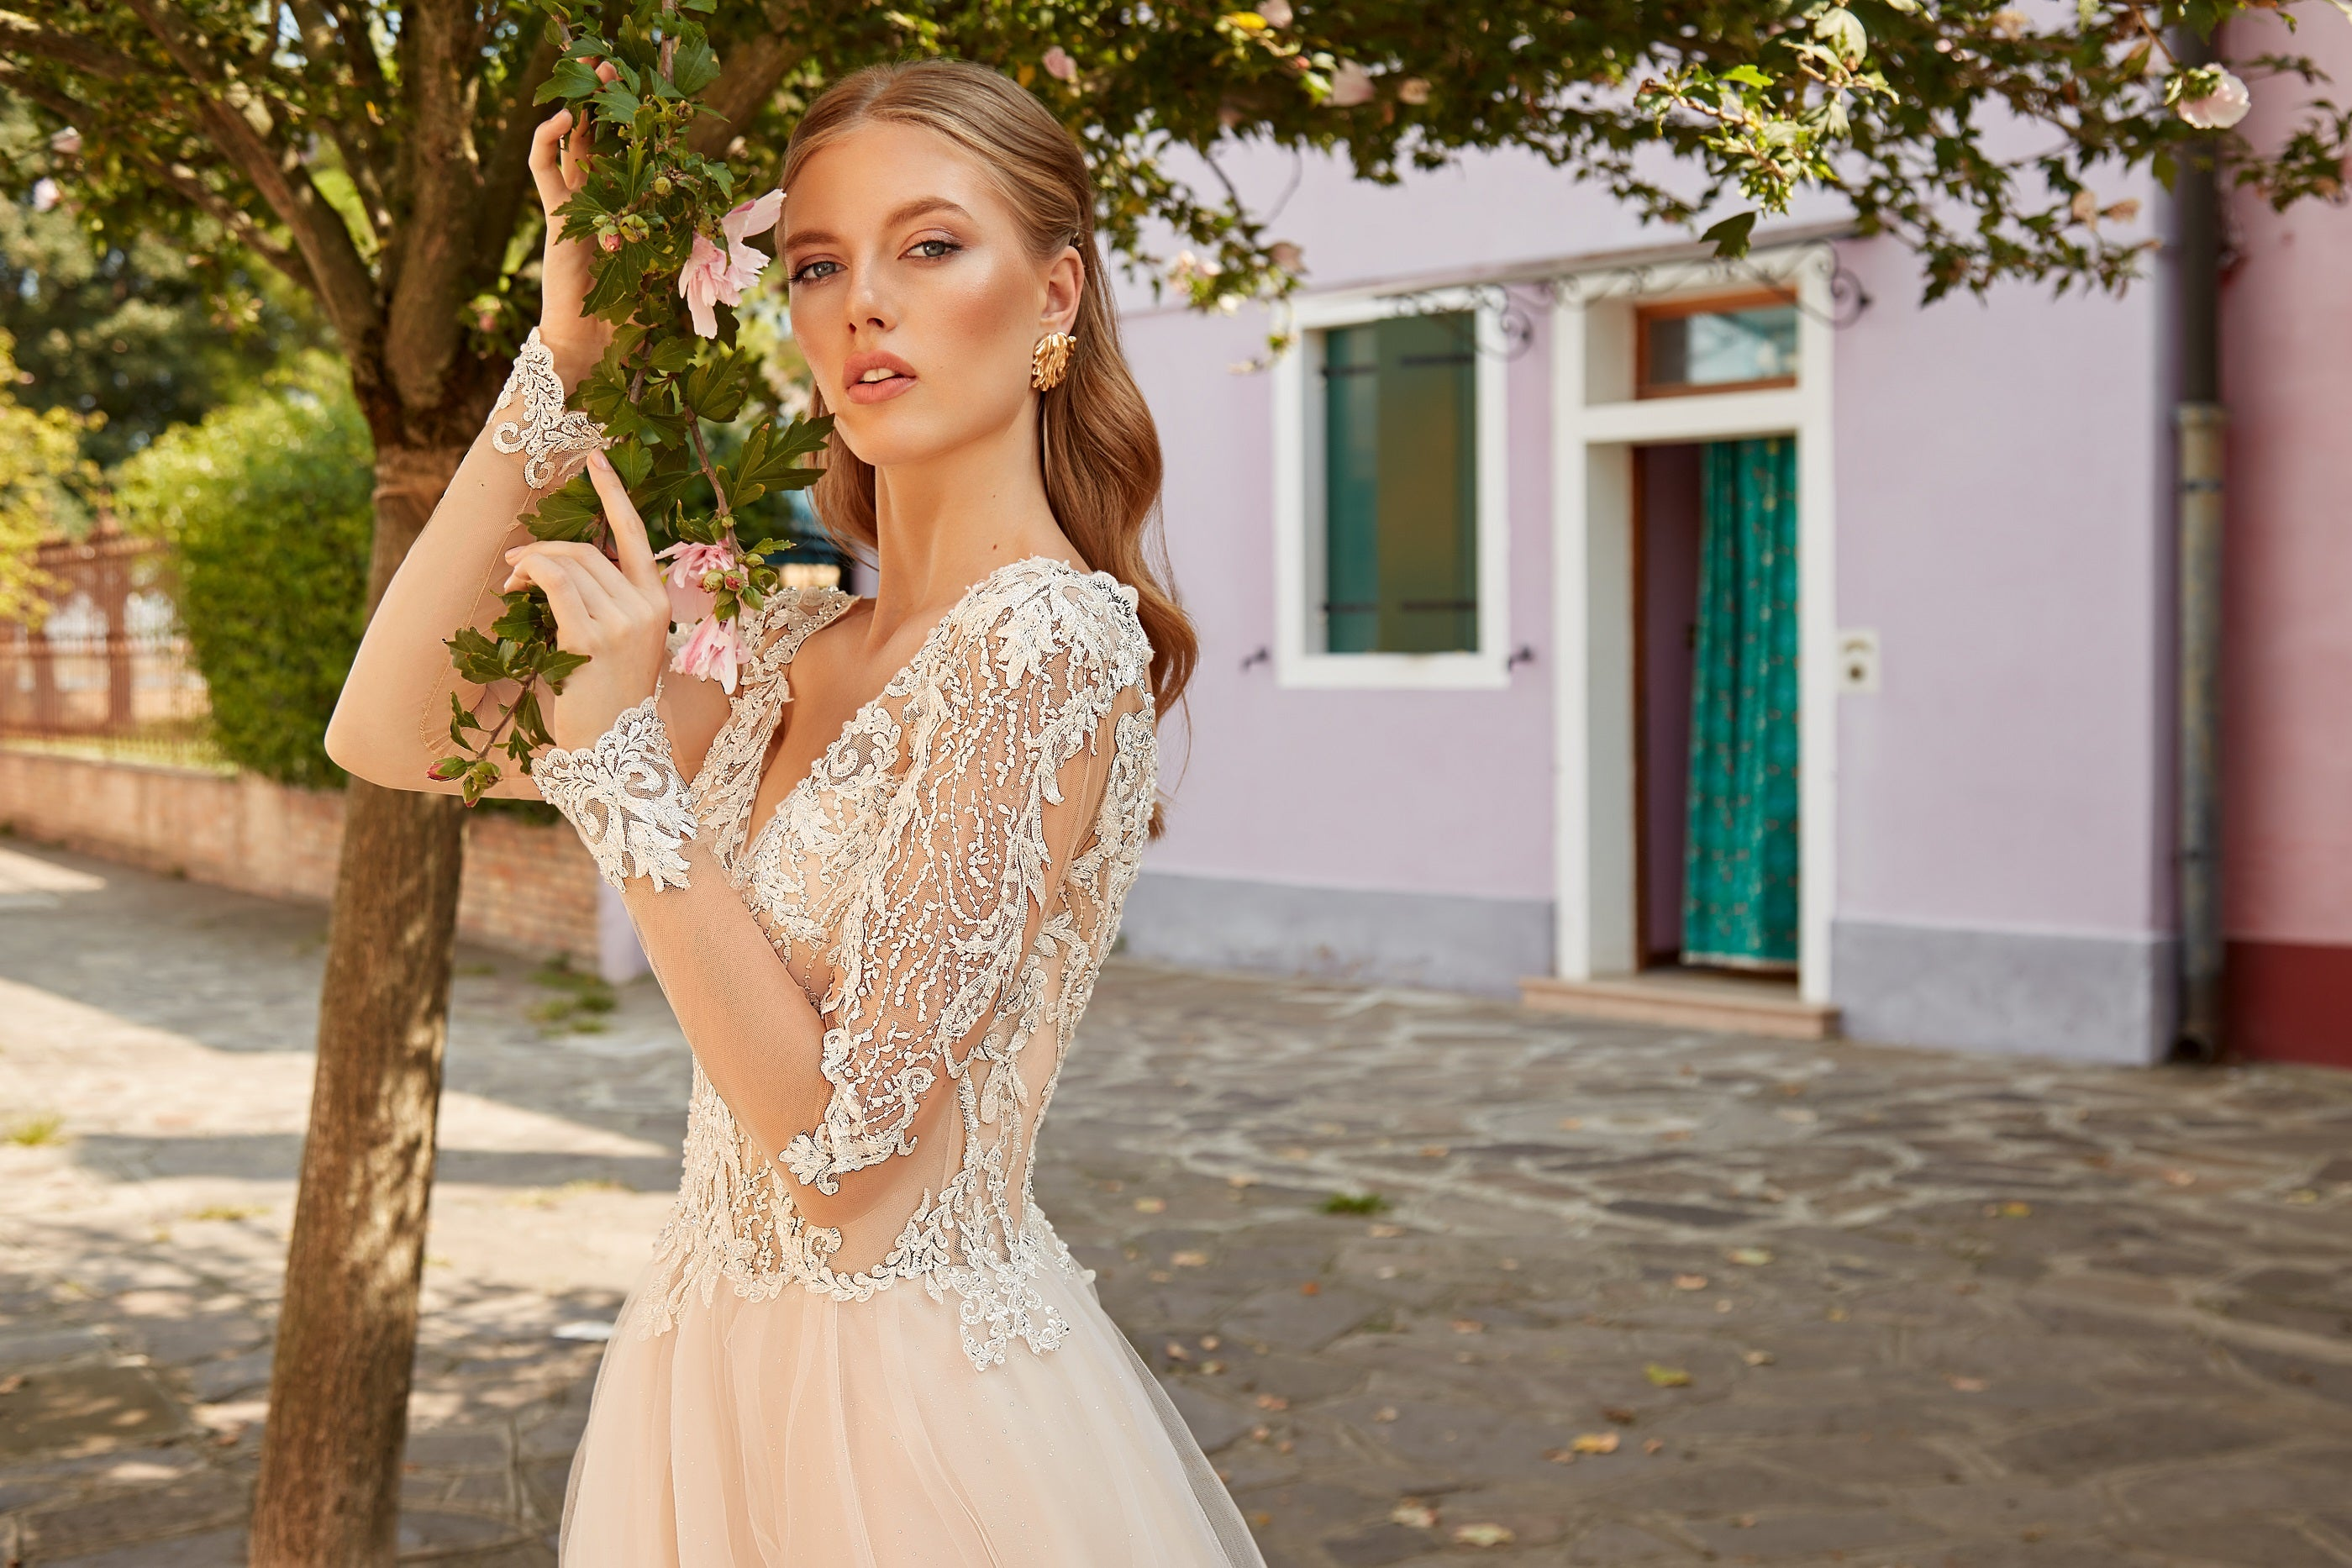 Francesca, Blush Long Sleeve Lace A-Line Romantic Wedding Dress with Tulle Side Slit Skirt - Also Available in White